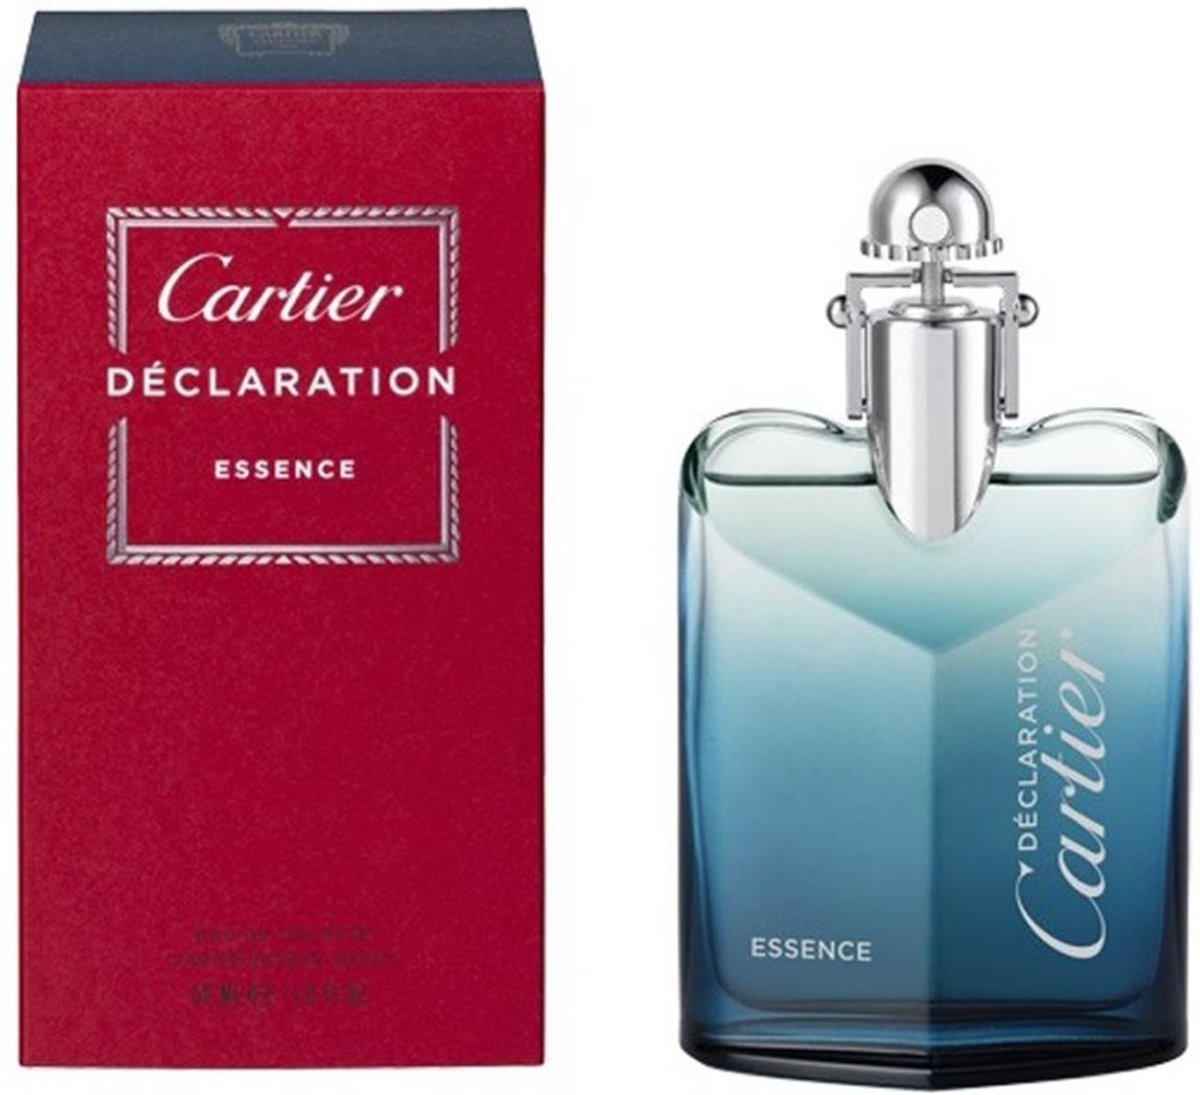 Cartier Declaration Essence 50ml EDT Spray